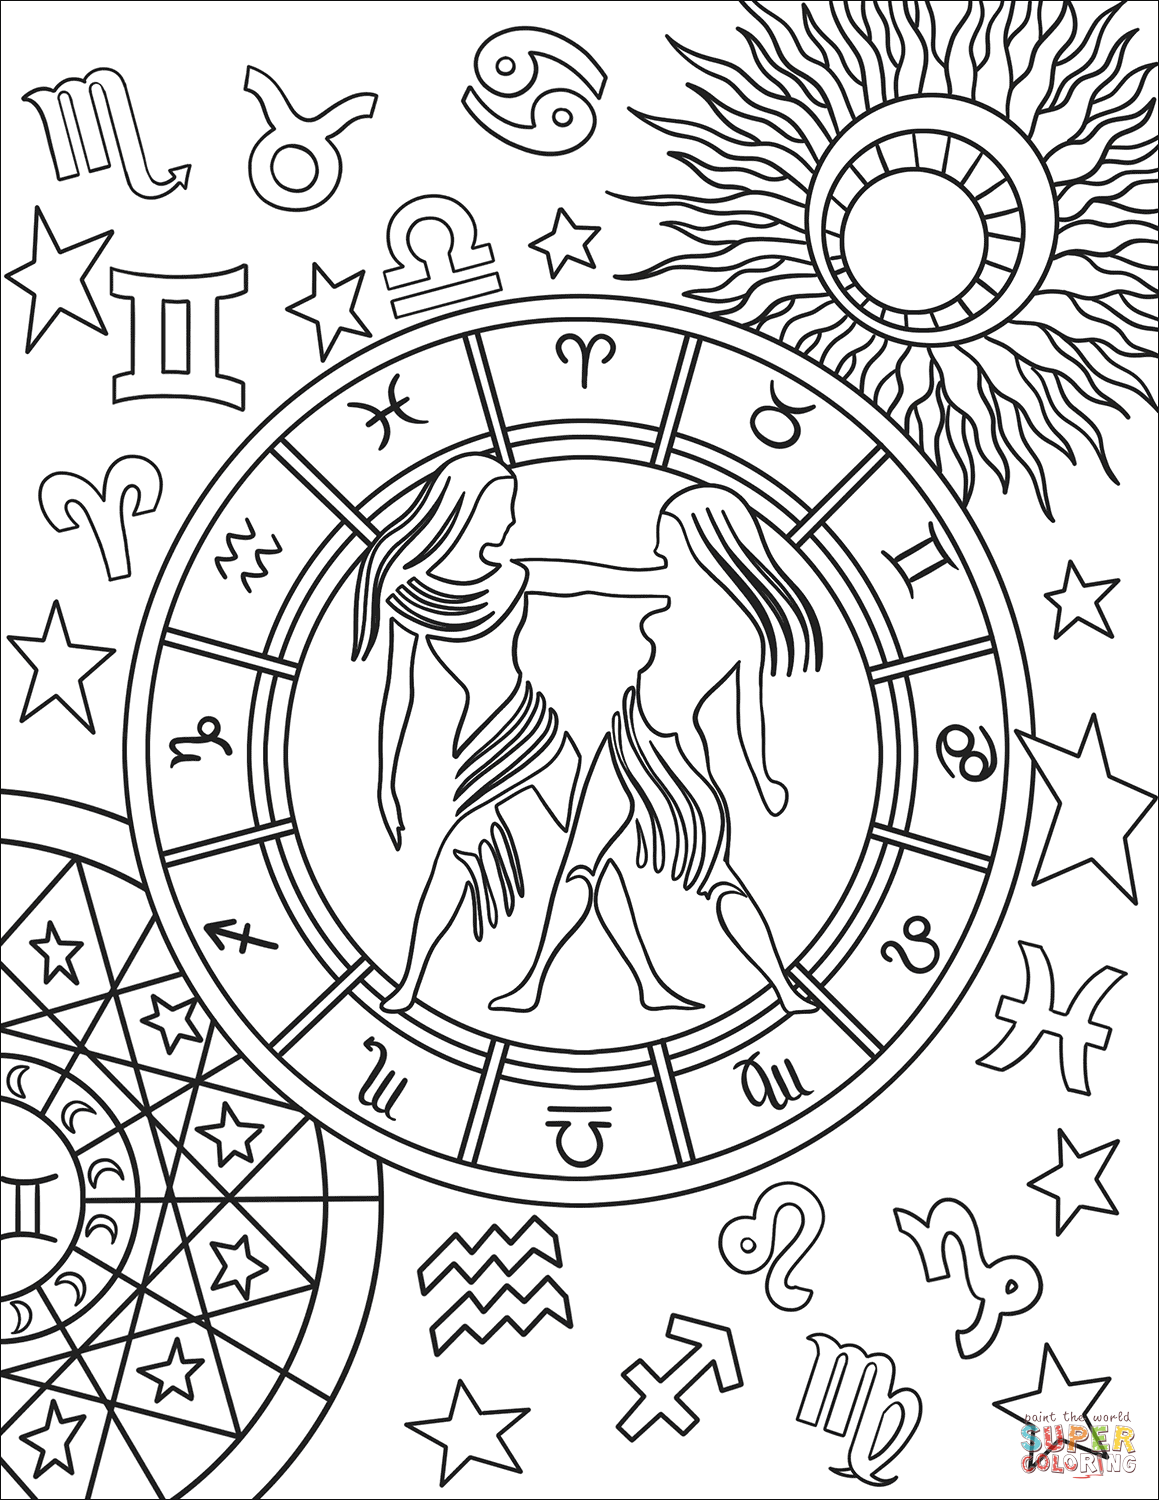 Gemini Zodiac Sign Coloring Page Free Printable Coloring Pages